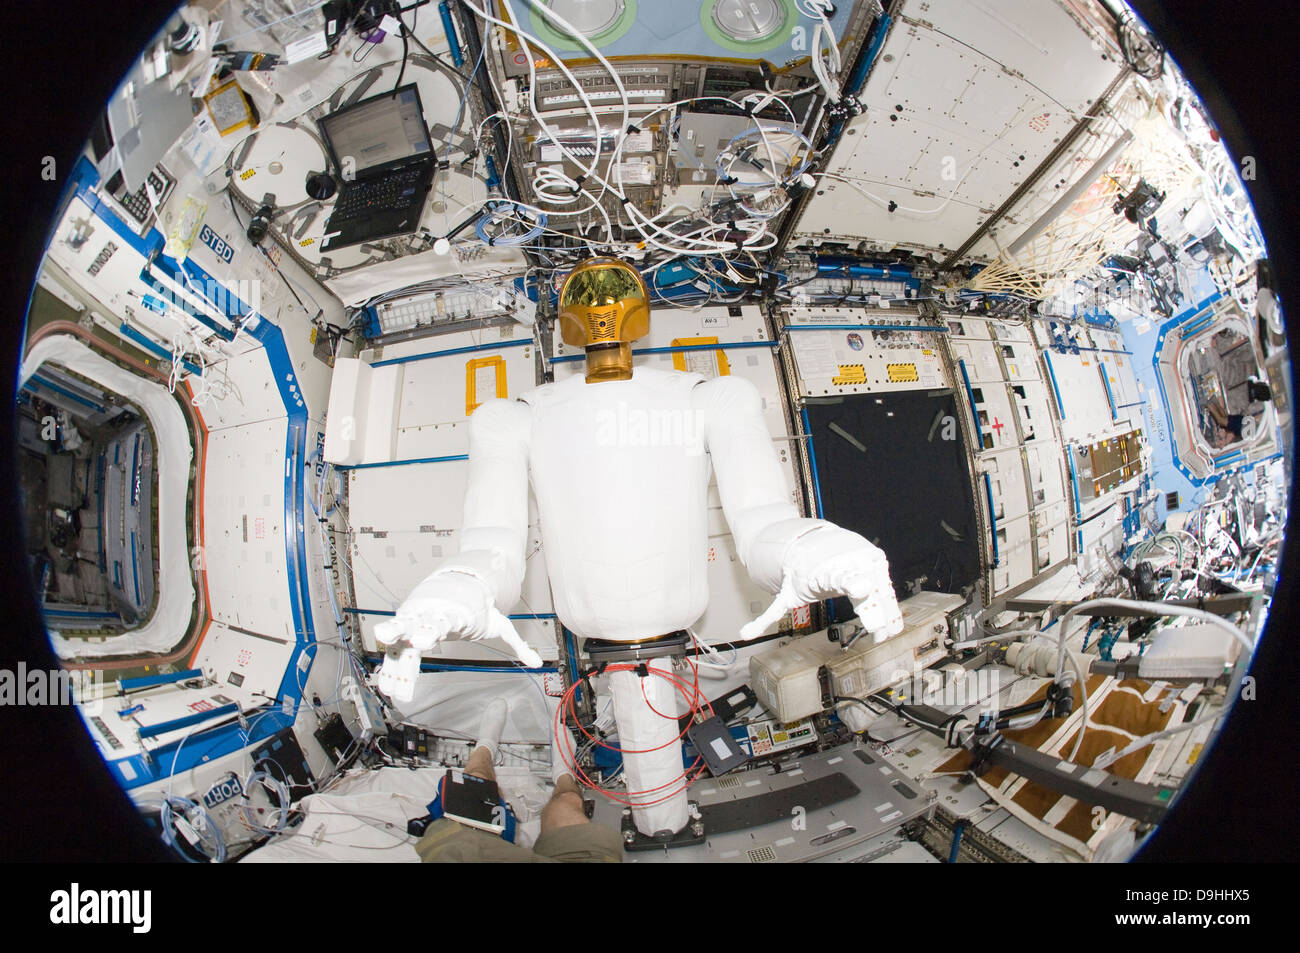 A humanoid robot in the Destiny laboratory of the International Space Station. - Stock Image